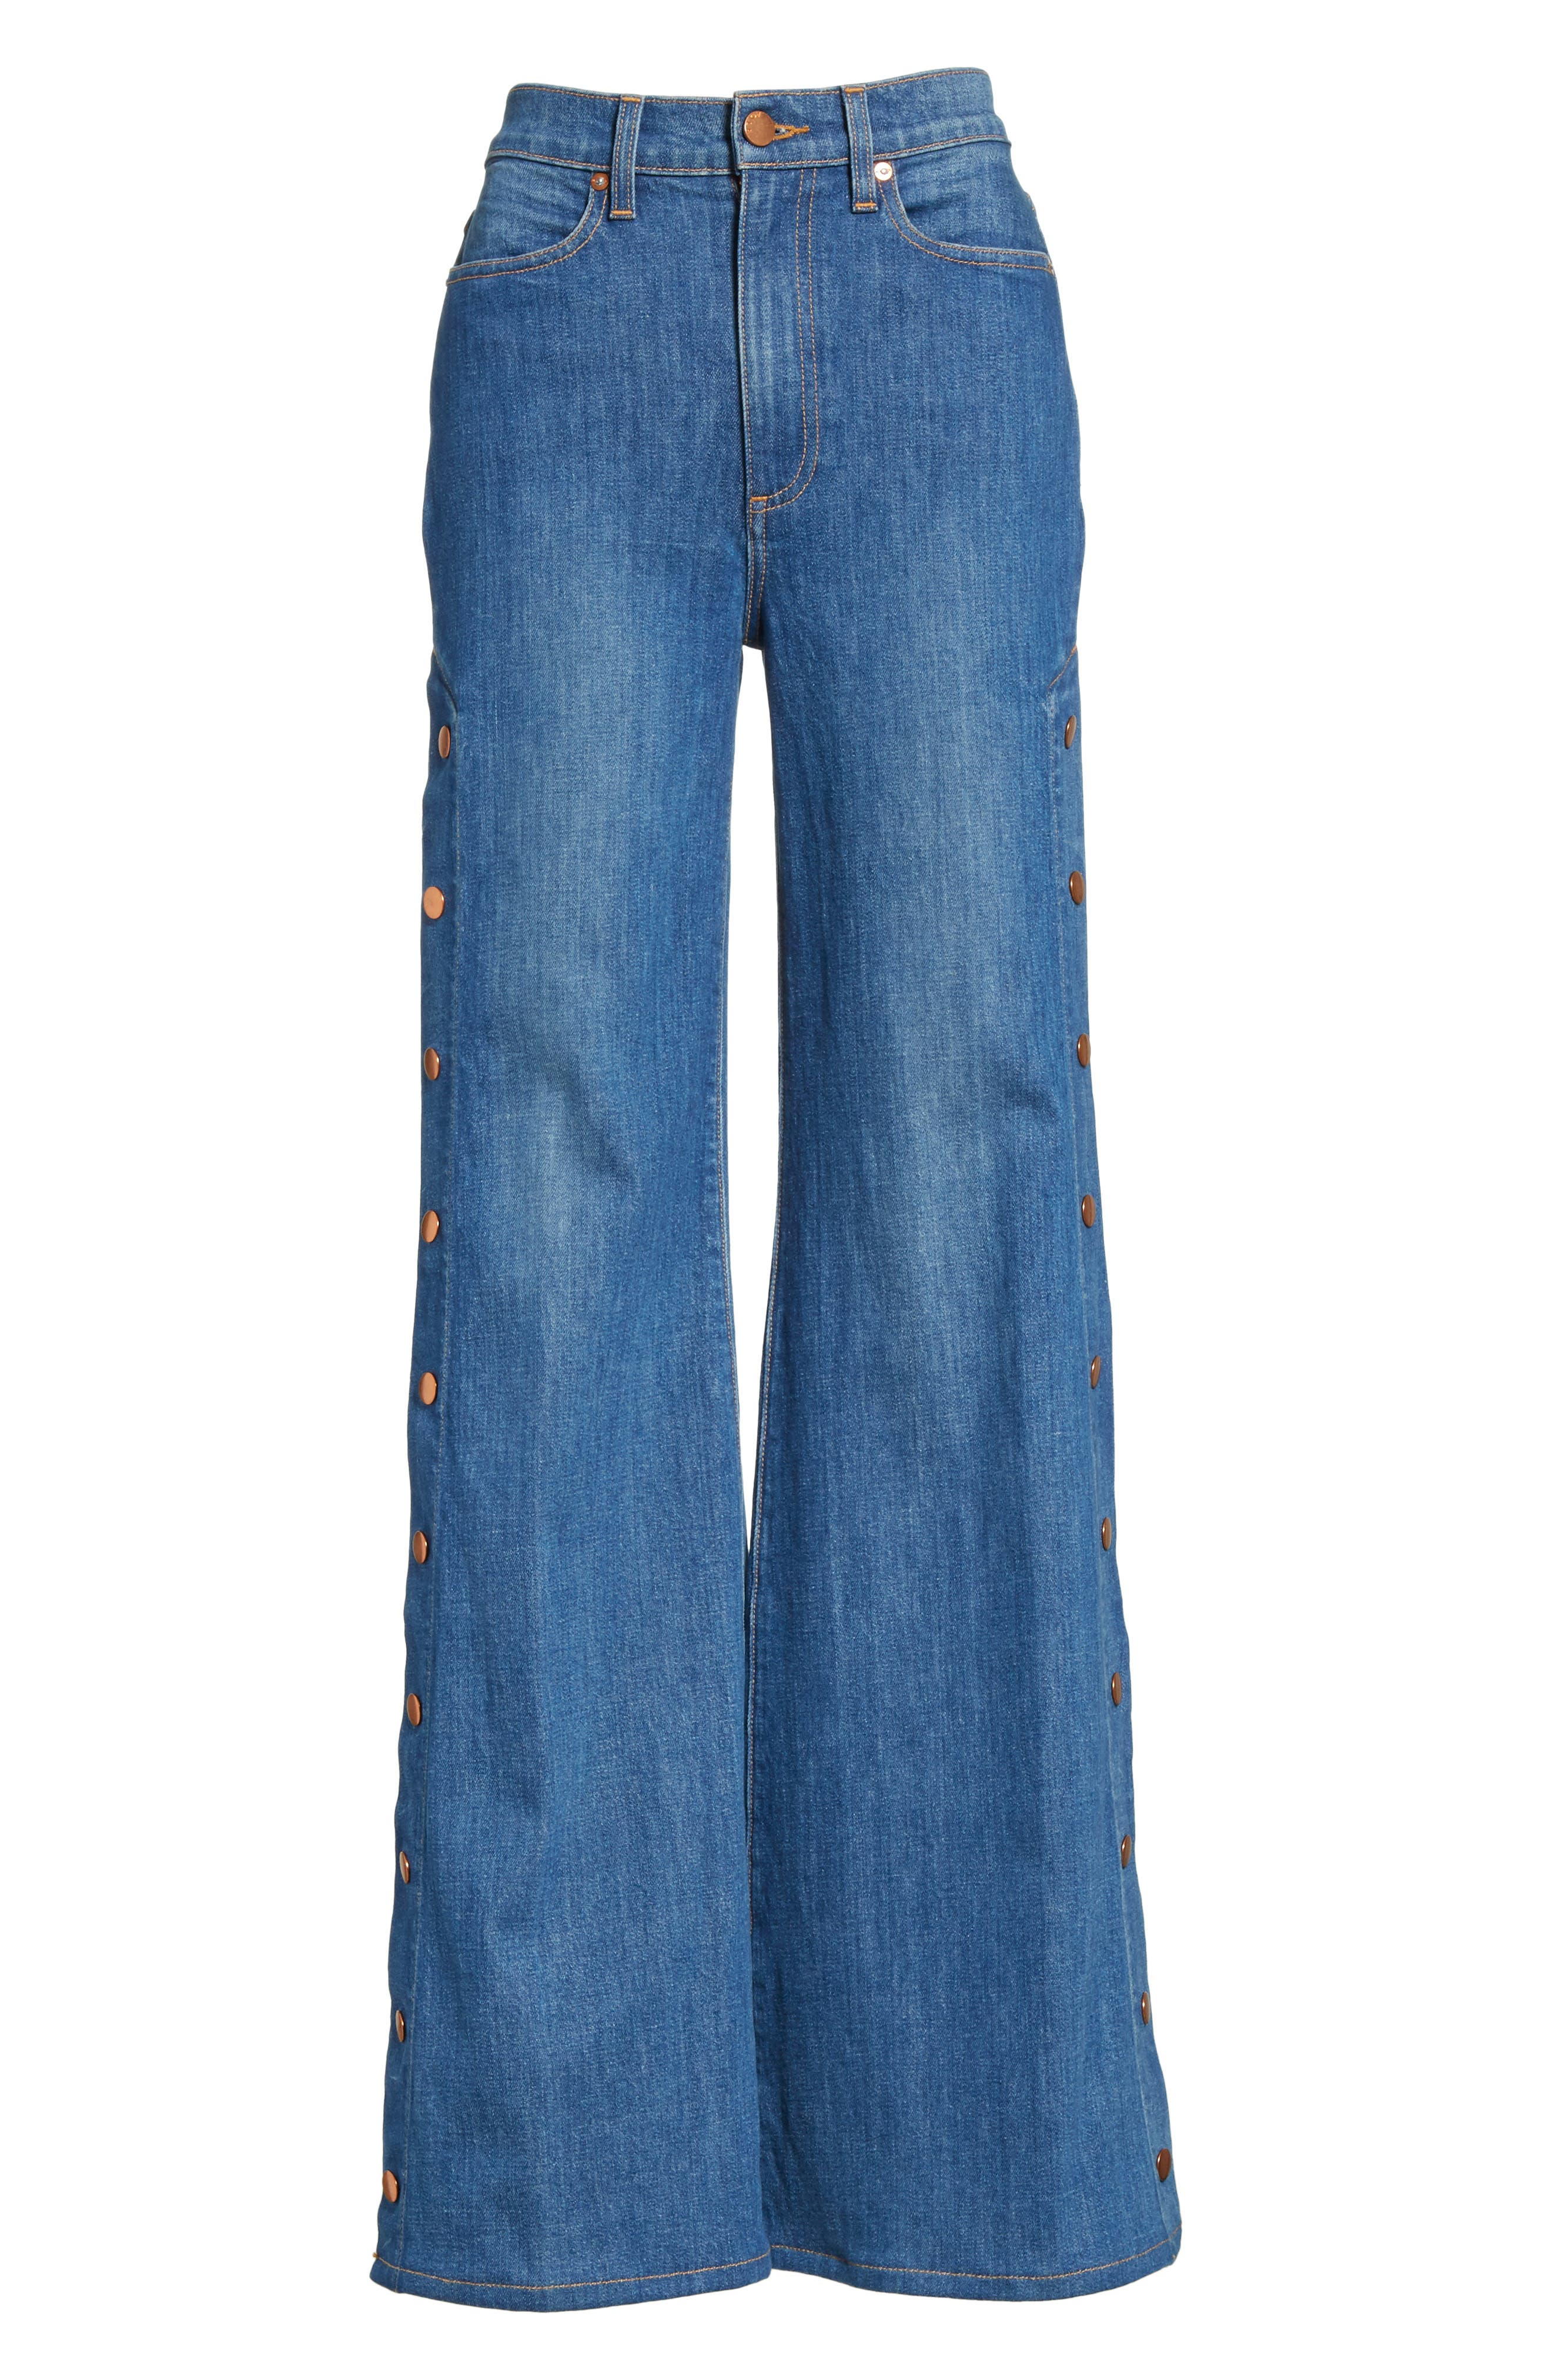 AO.LA Gorgeous Snap Side Flare Leg Jeans,                             Alternate thumbnail 6, color,                             460